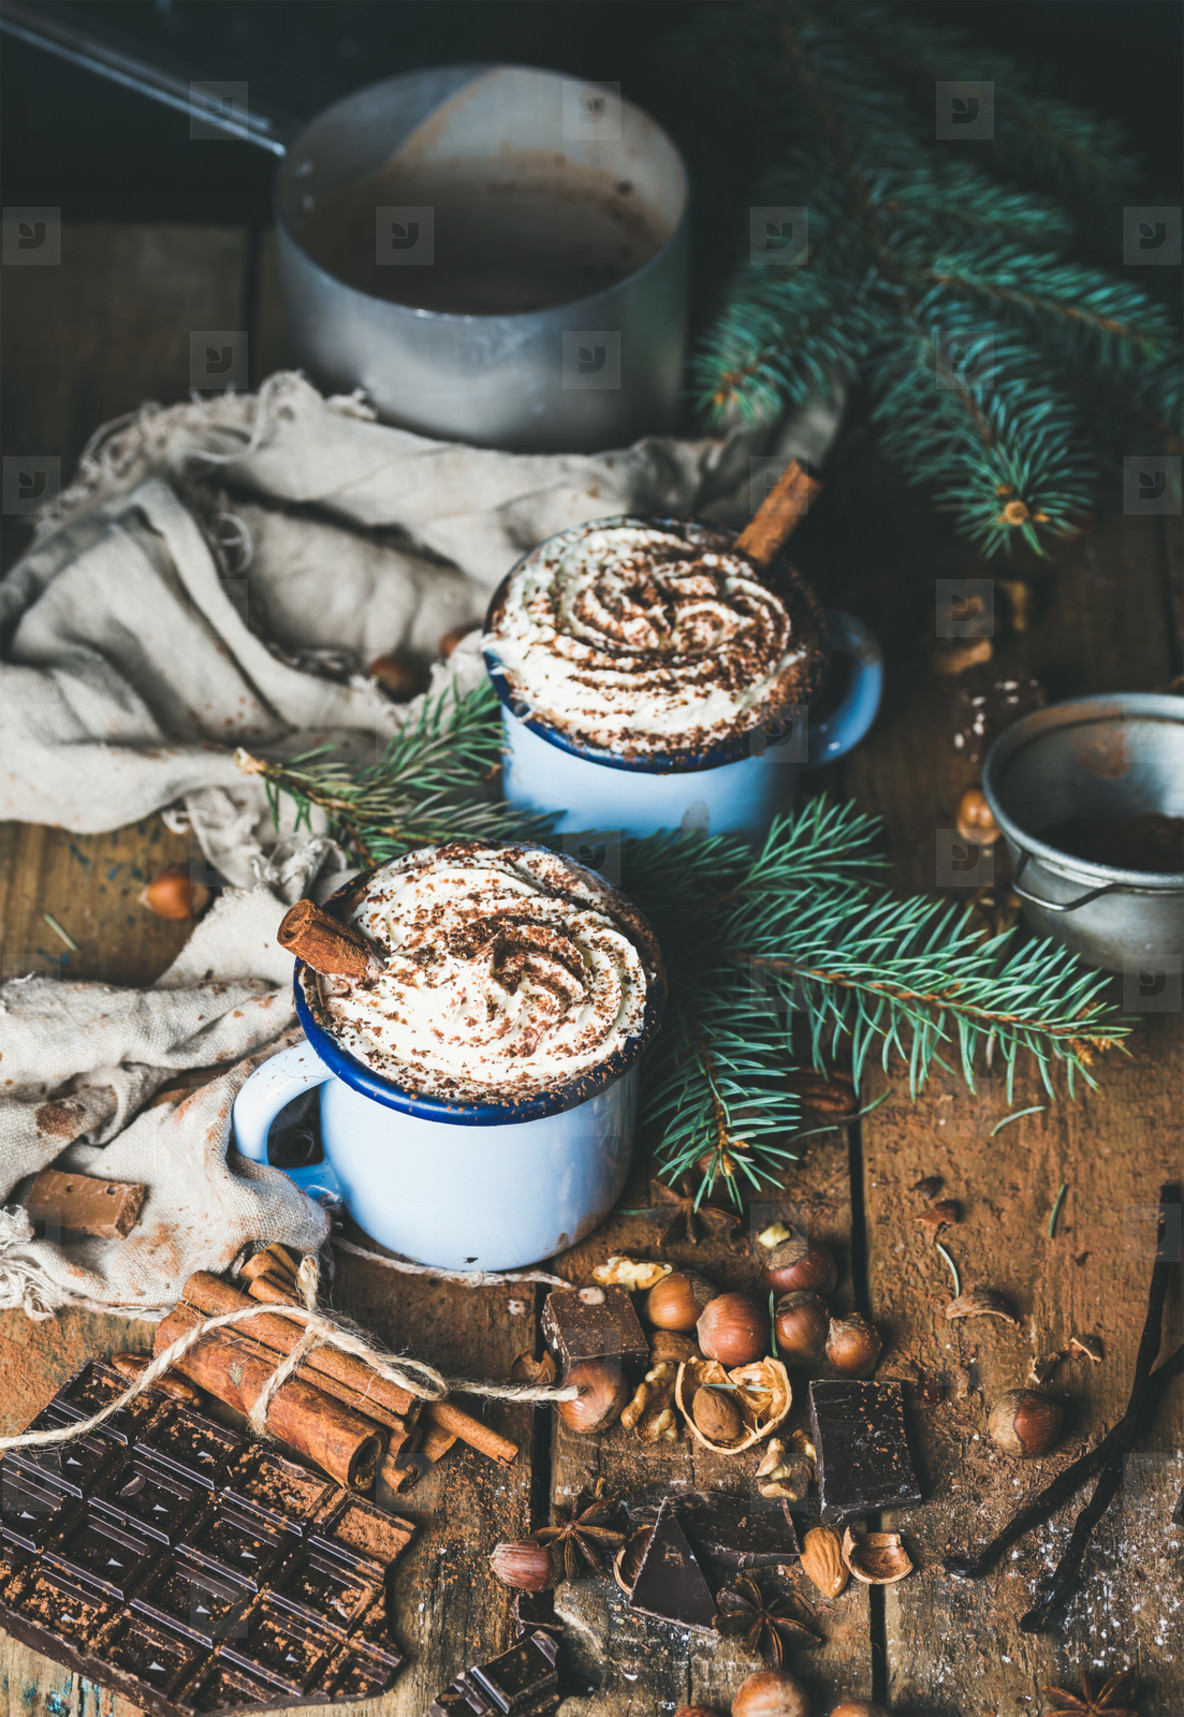 Hot chocolate with whipped cream  nuts  spices and fir tree branches